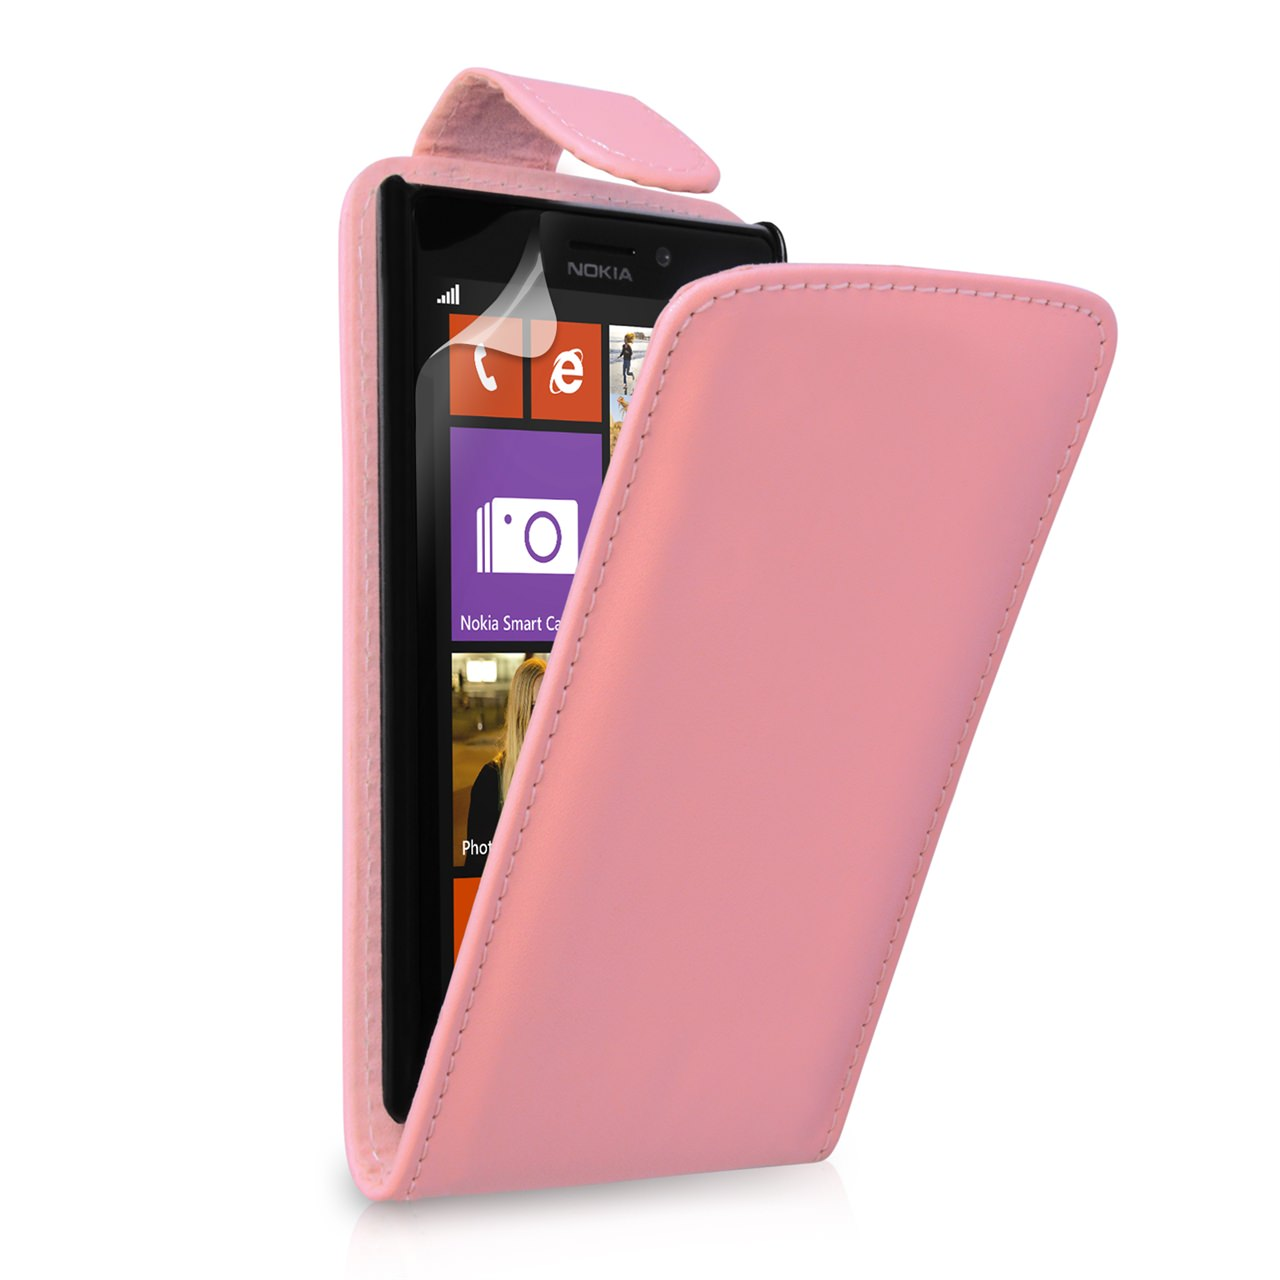 YouSave Accessories Nokia Lumia 925 Leather Effect Flip Case - Pink